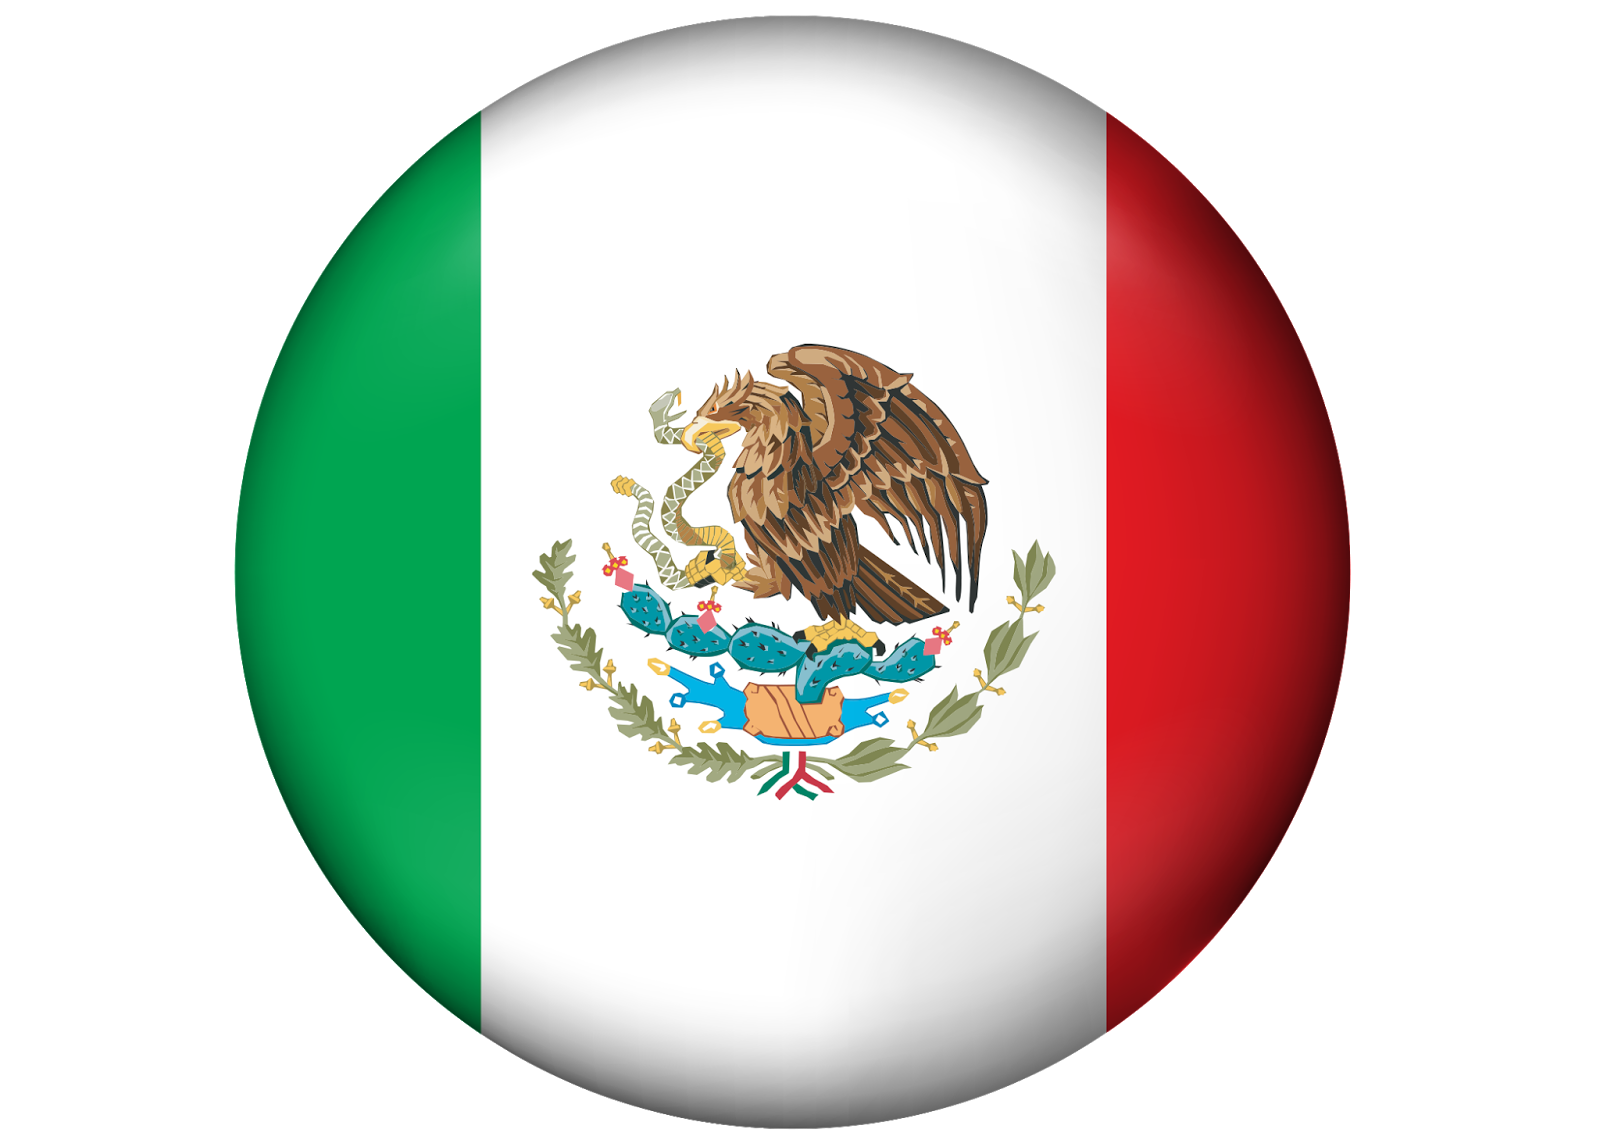 Icono Mapa Mexico Png: Mexico PNG HD Transparent Mexico HD.PNG Images.